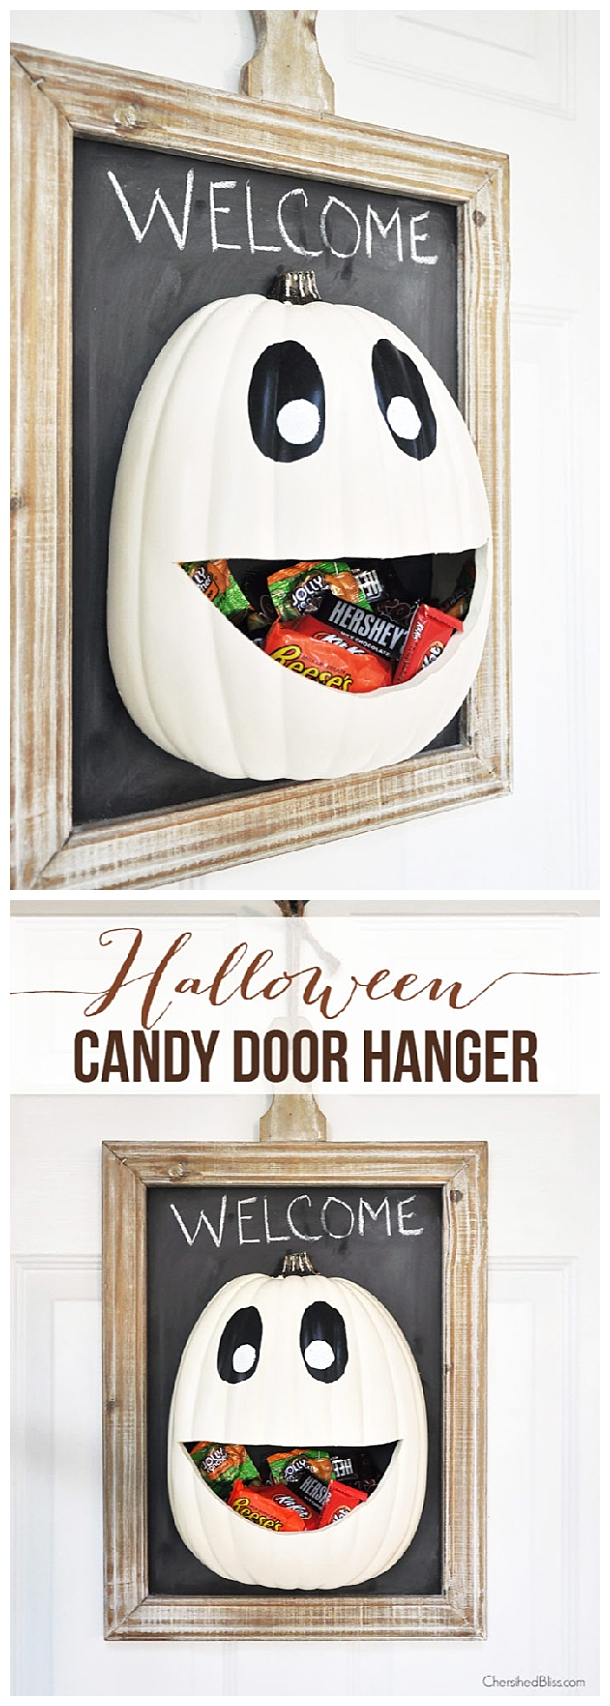 DIY Halloween Candy Pumpkin Face Door Hanger Decoration | Cherished Bliss = Spooktacular Halloween DIYs, Crafts and Projects - The BEST Do it Yourself Halloween Decorations #halloween #halloweendecorations